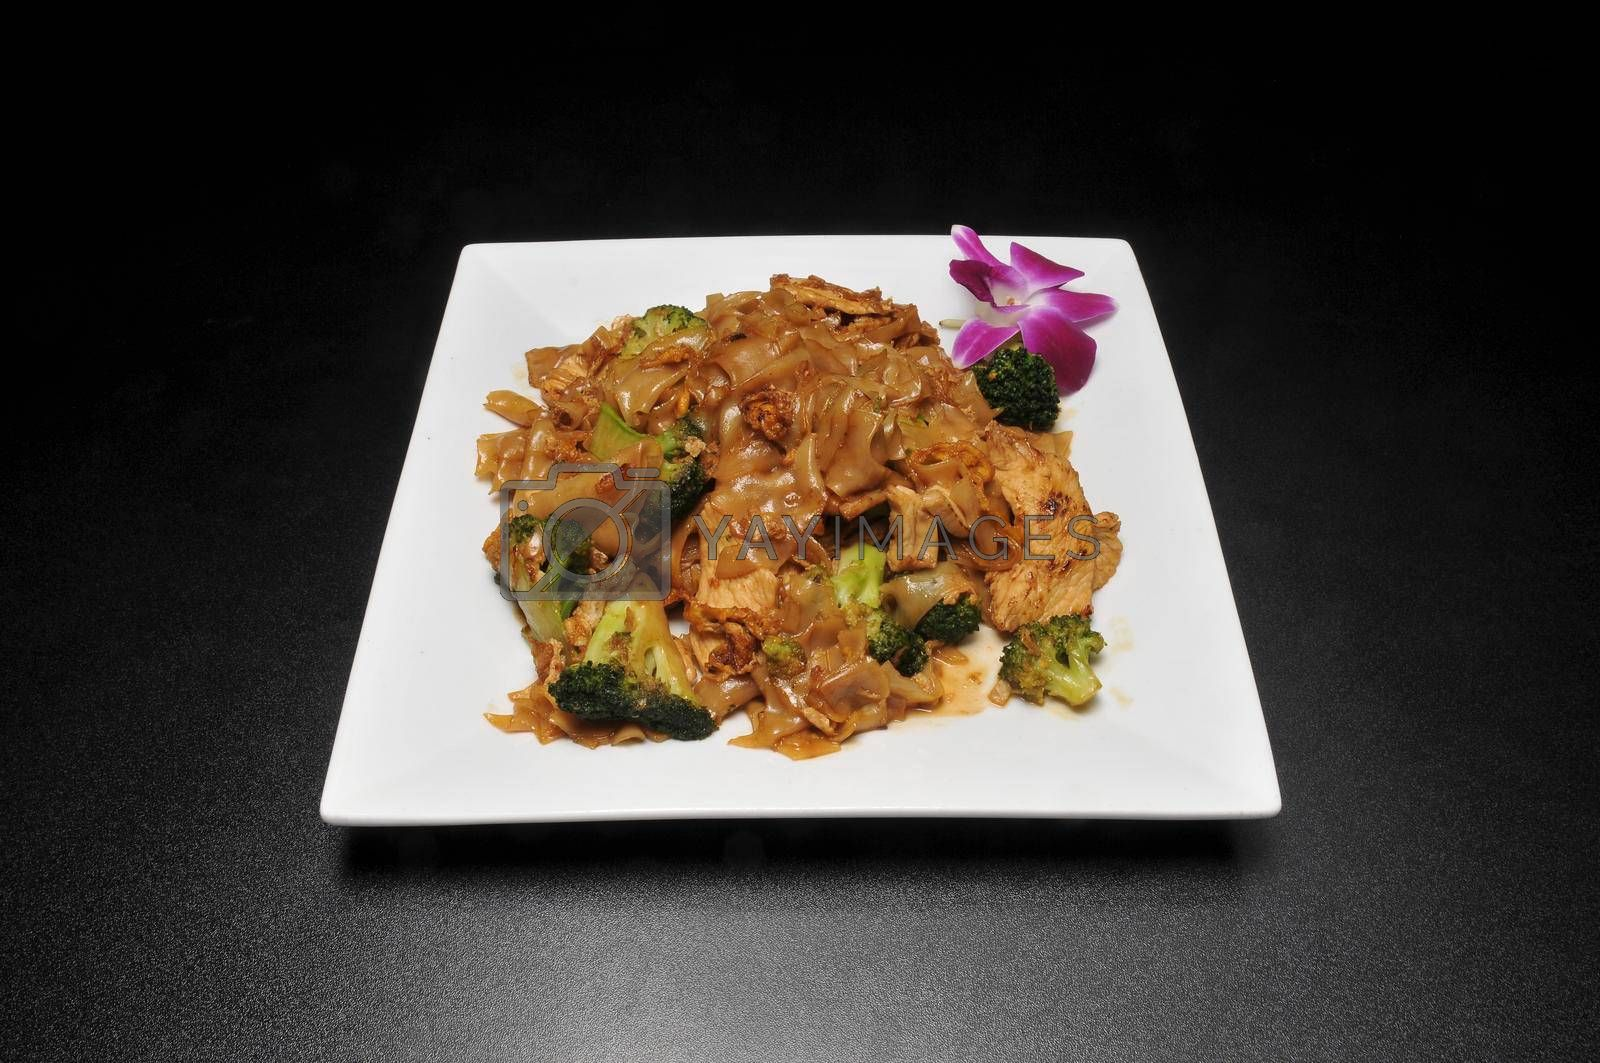 Traditional delicious Thai cuisine known as pad see ew